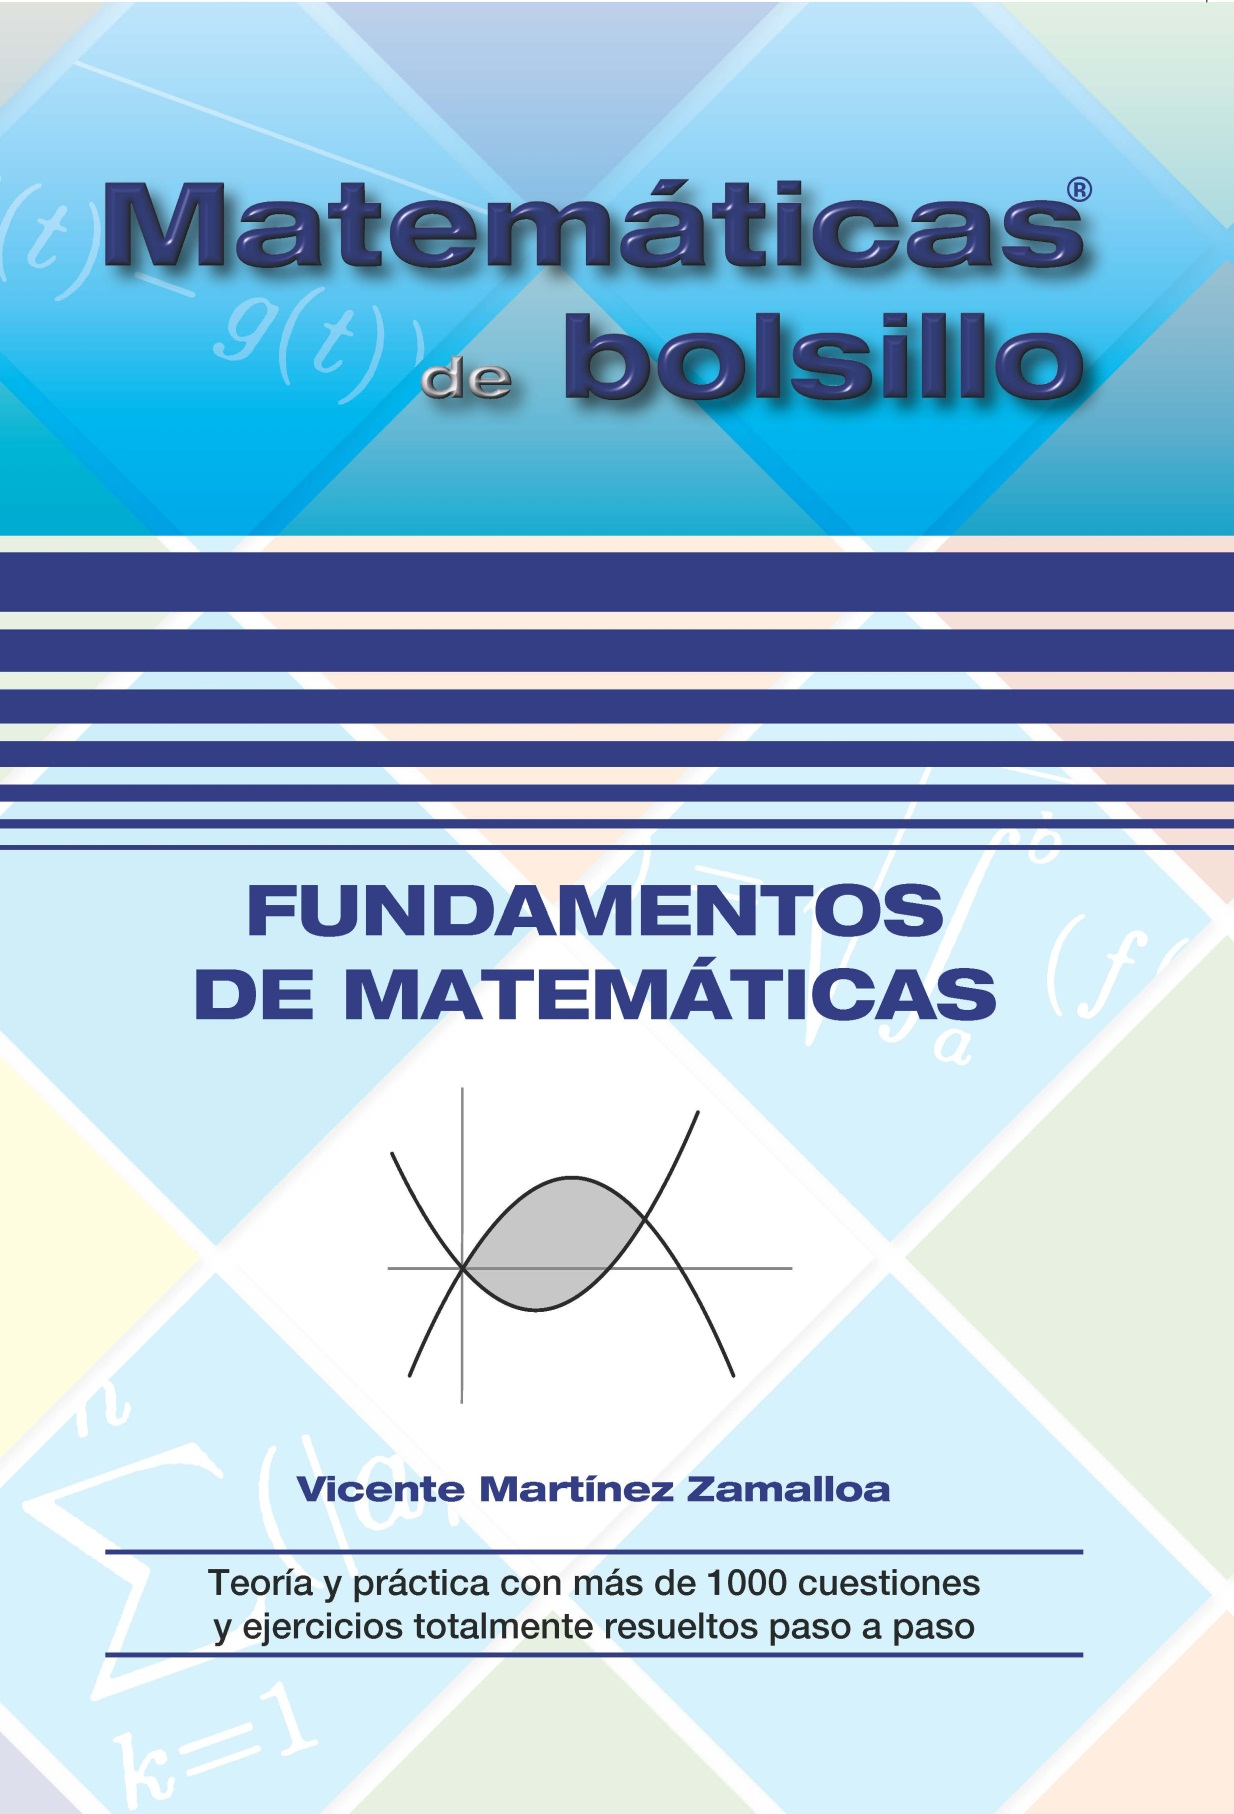 FUNDAMENTOS DE MATEMÁTICAS ISBN: 978-84-941559-0-1 Depósito Legal: